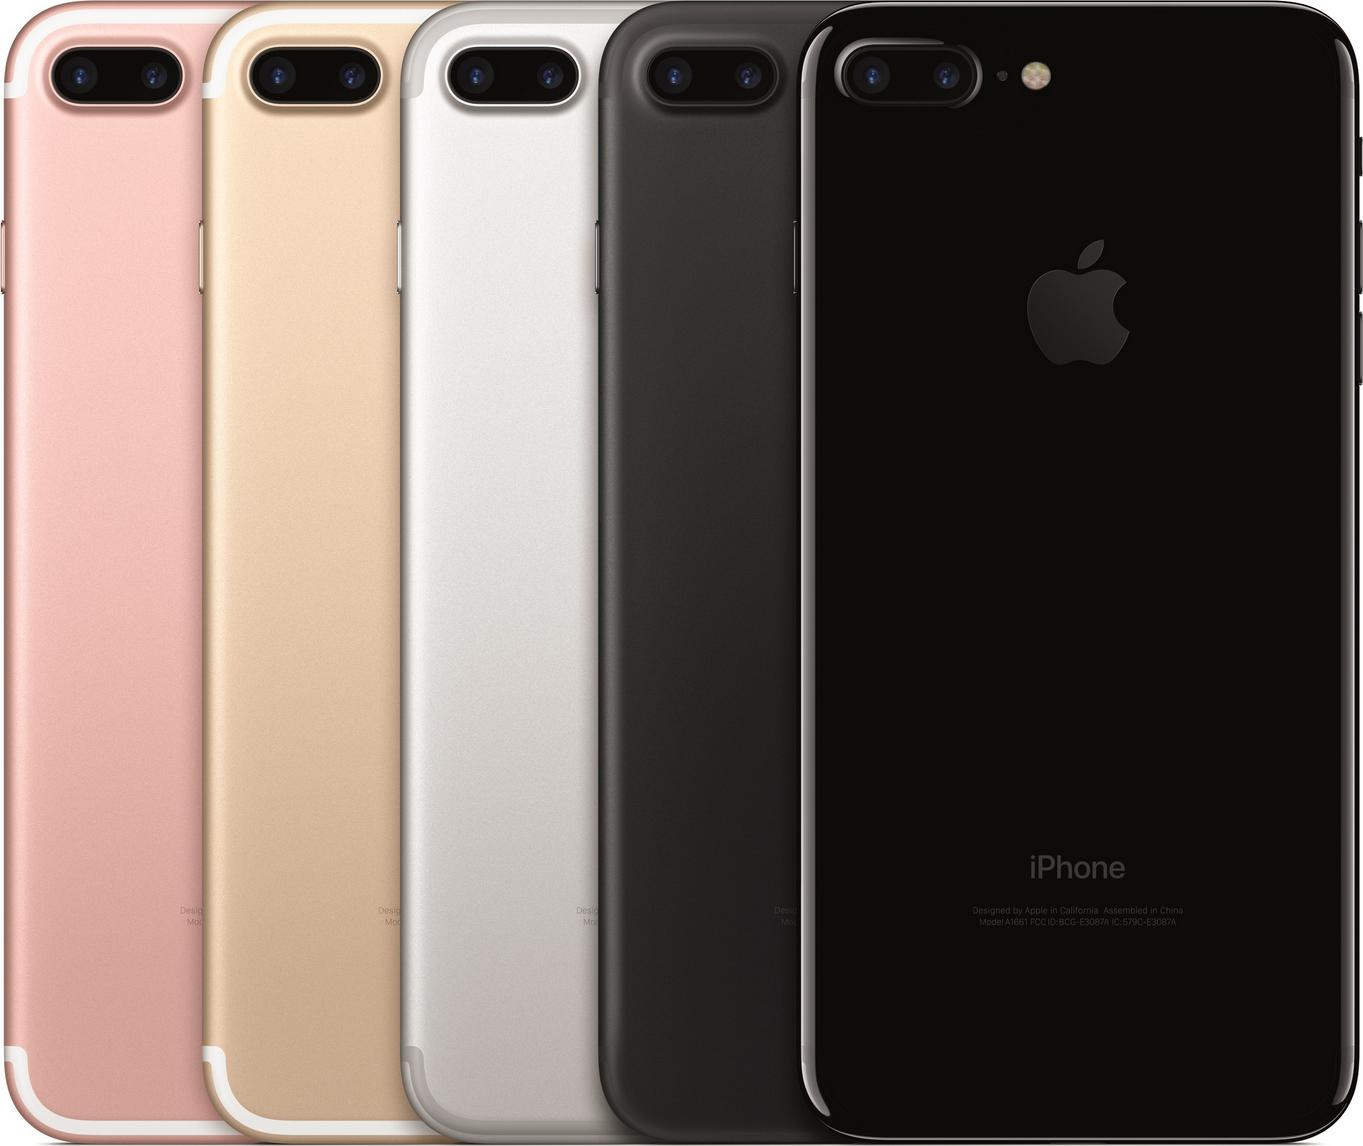 Смартфон Apple iPhone 7 Plus 128Gb  цена, отзывы, фото, Apple iPhone ... 4e63da08ff4